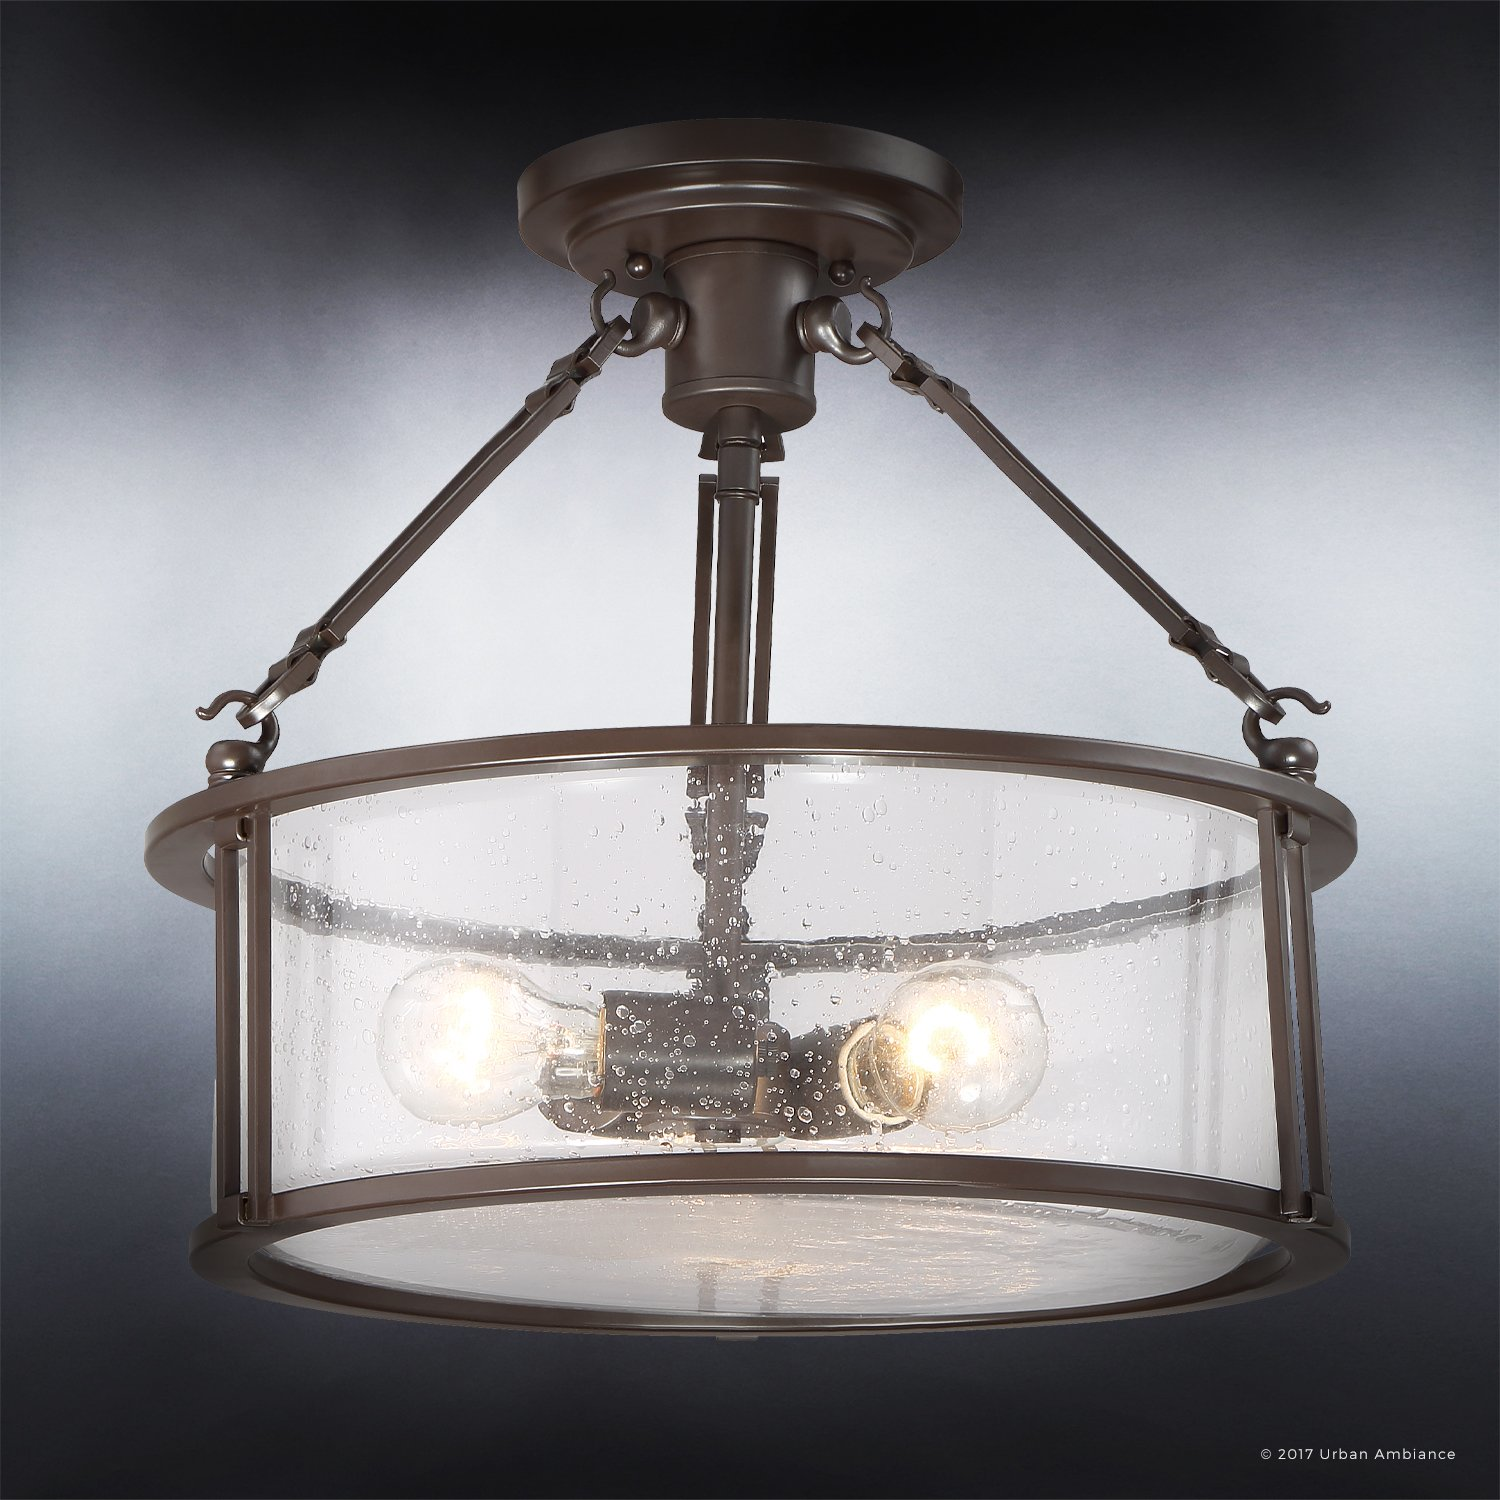 Luxury Industrial Semi-Flush Ceiling Light, Medium Size: 14.25''H x 16''W, with Western Style Elements, Rectangular Link Design, Elegant Estate Bronze Finish and Seeded Glass, UQL2133 by Urban Ambiance by Urban Ambiance (Image #3)